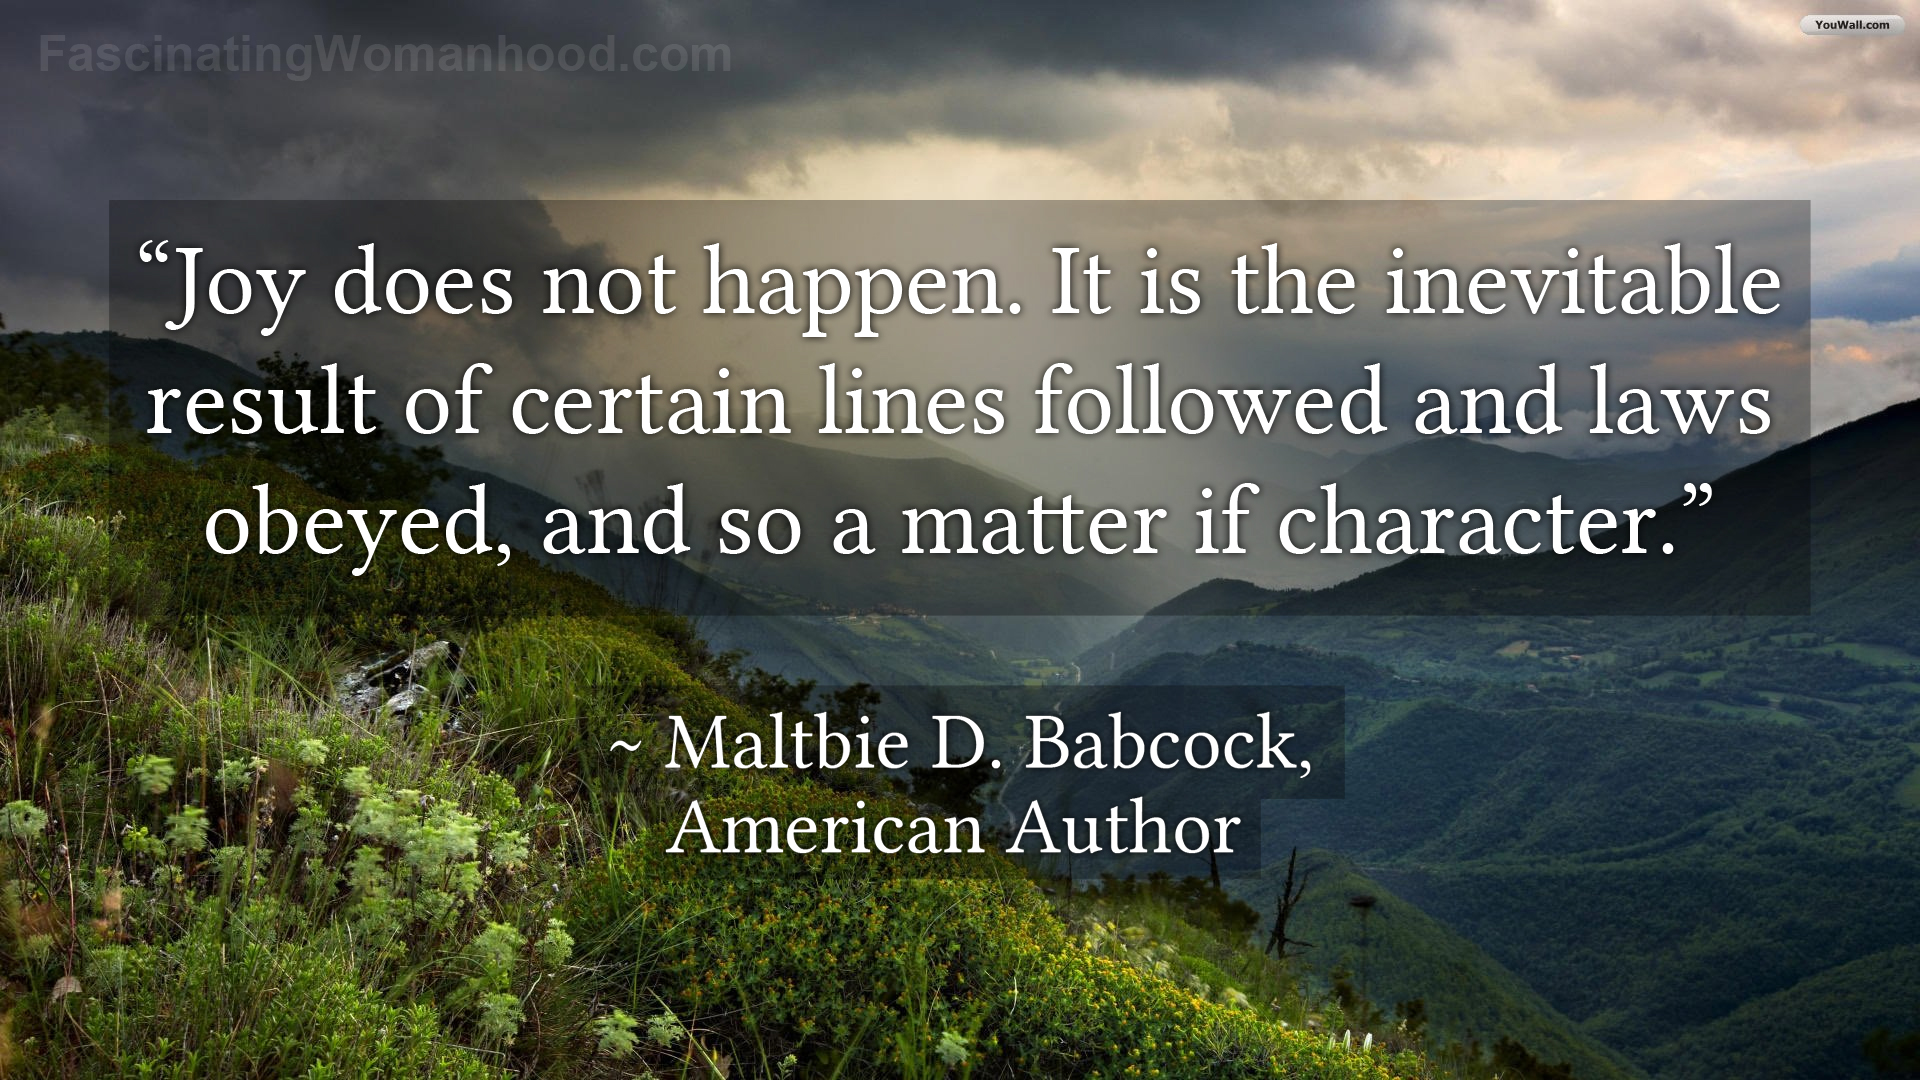 A Quote by Maltbie D Babcock.jpg